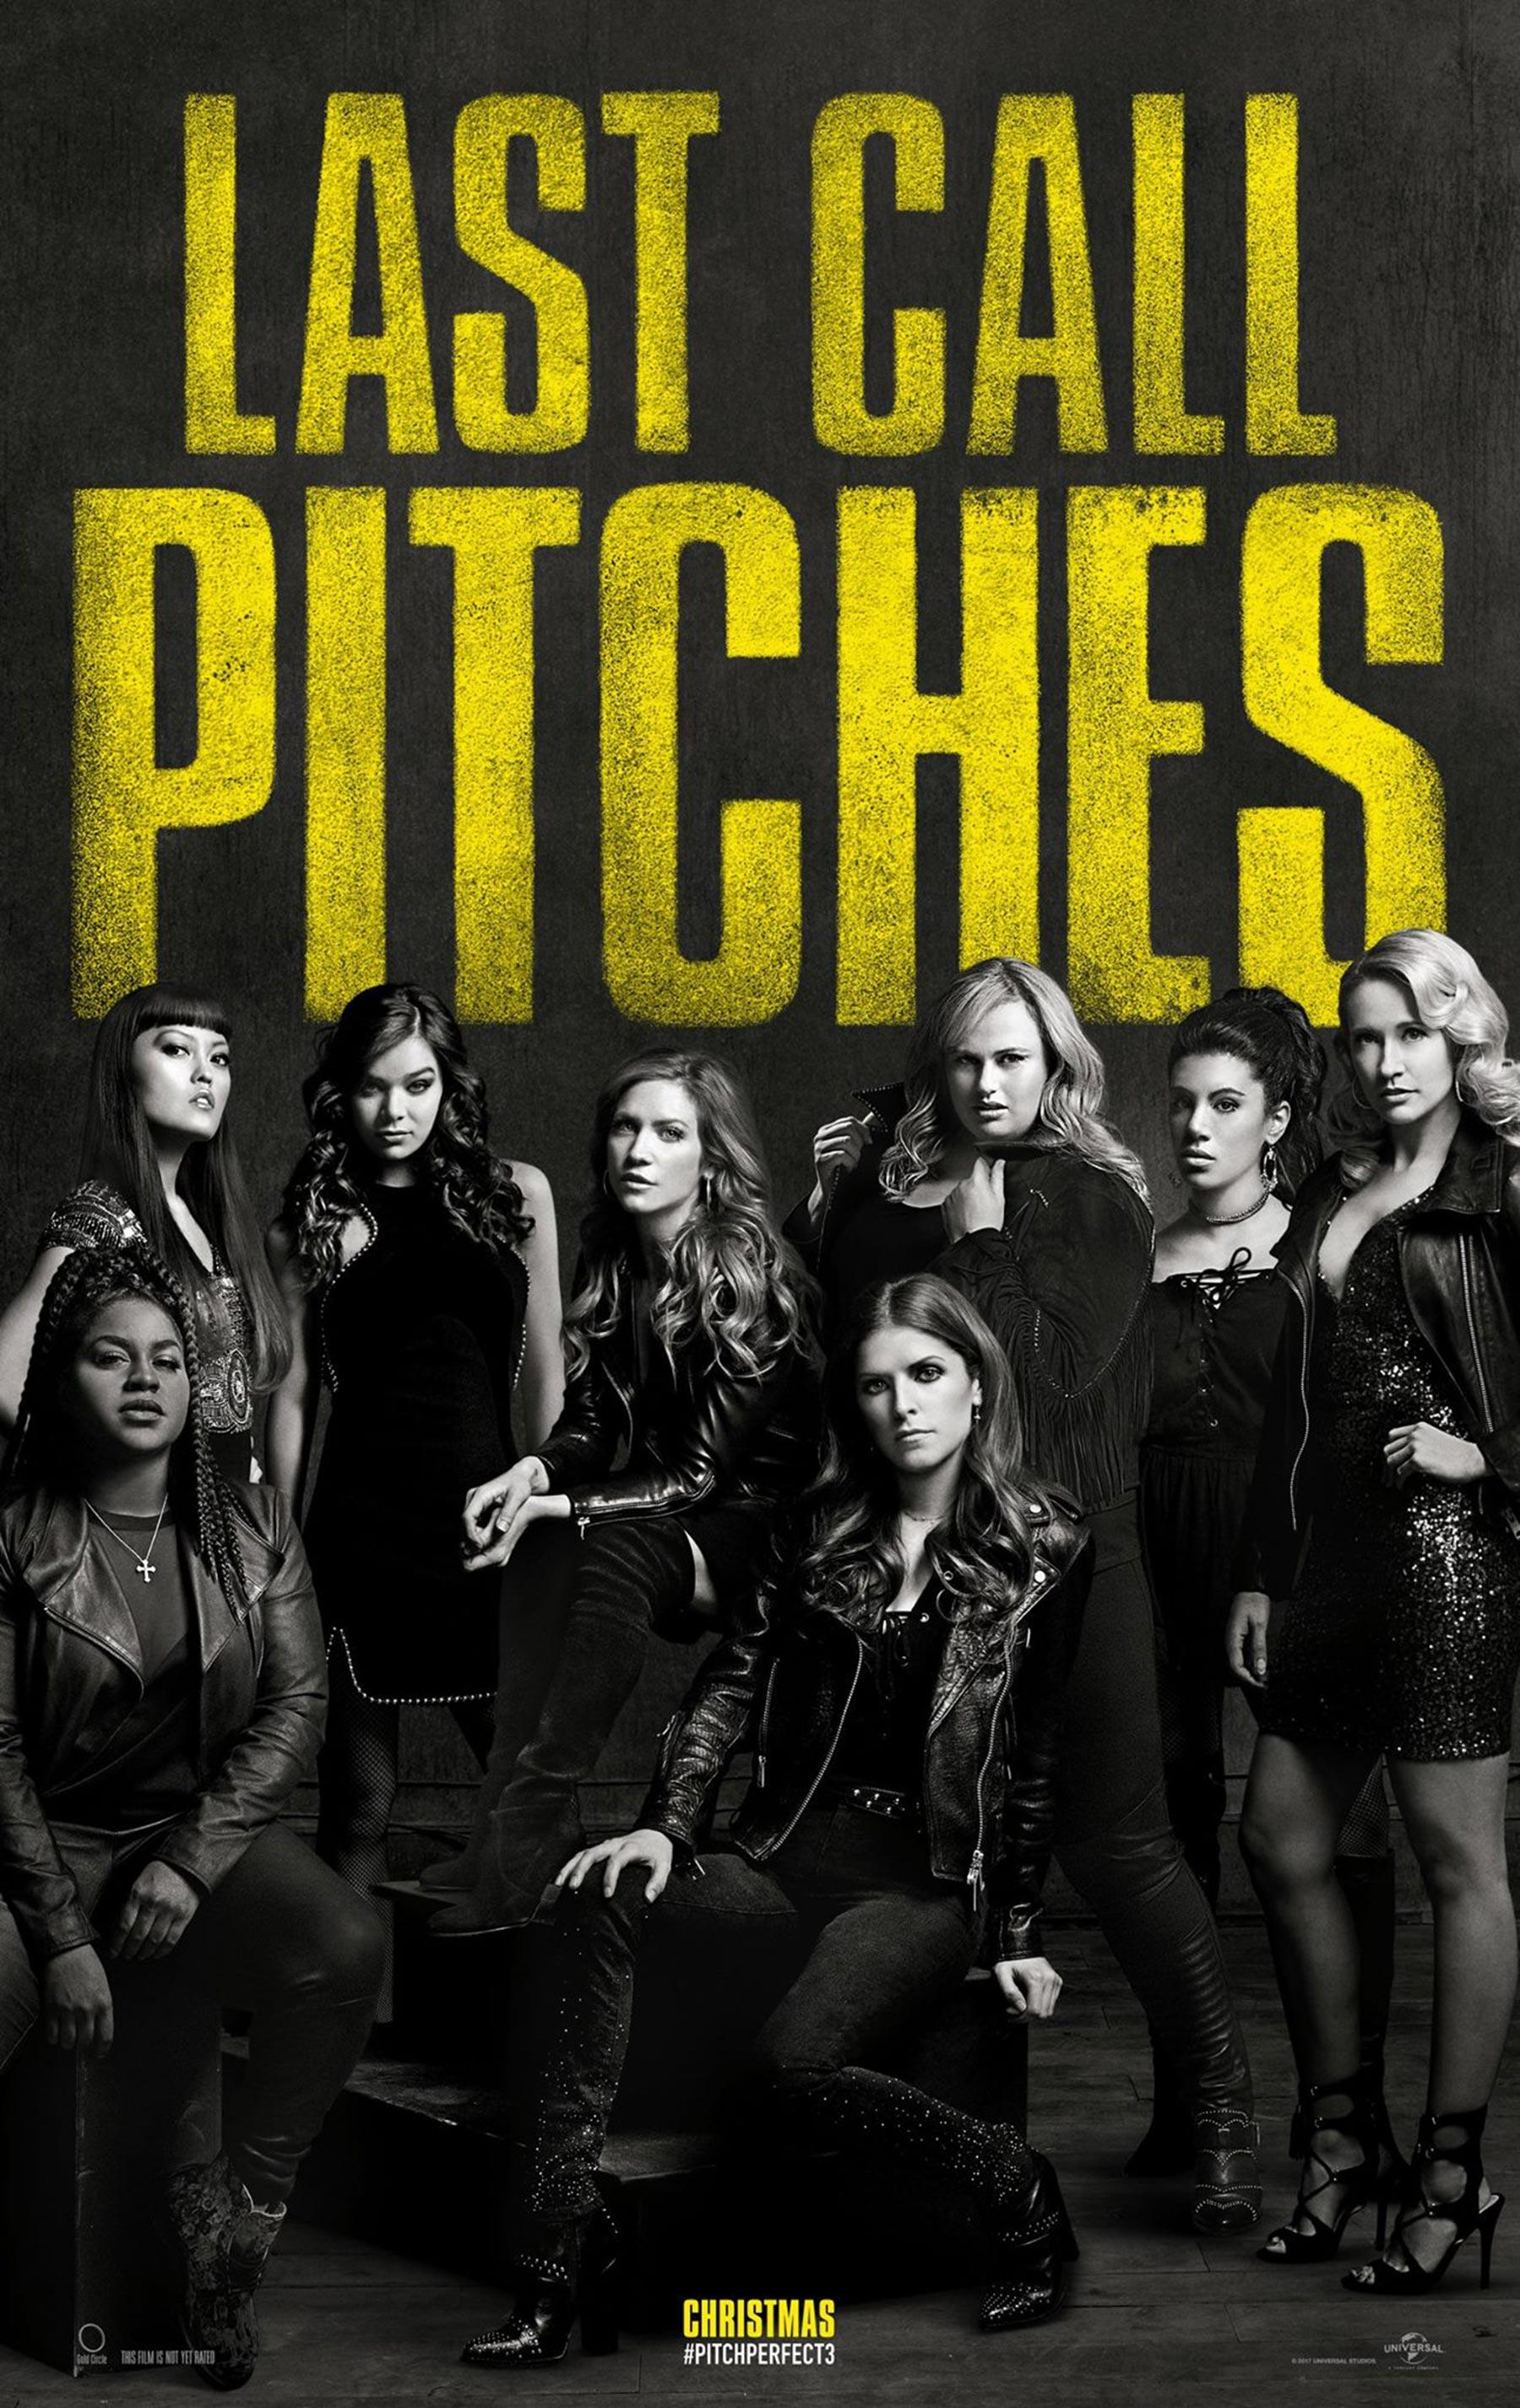 The <em>Pitch Perfect 3</em> poster teases the end of the franchise